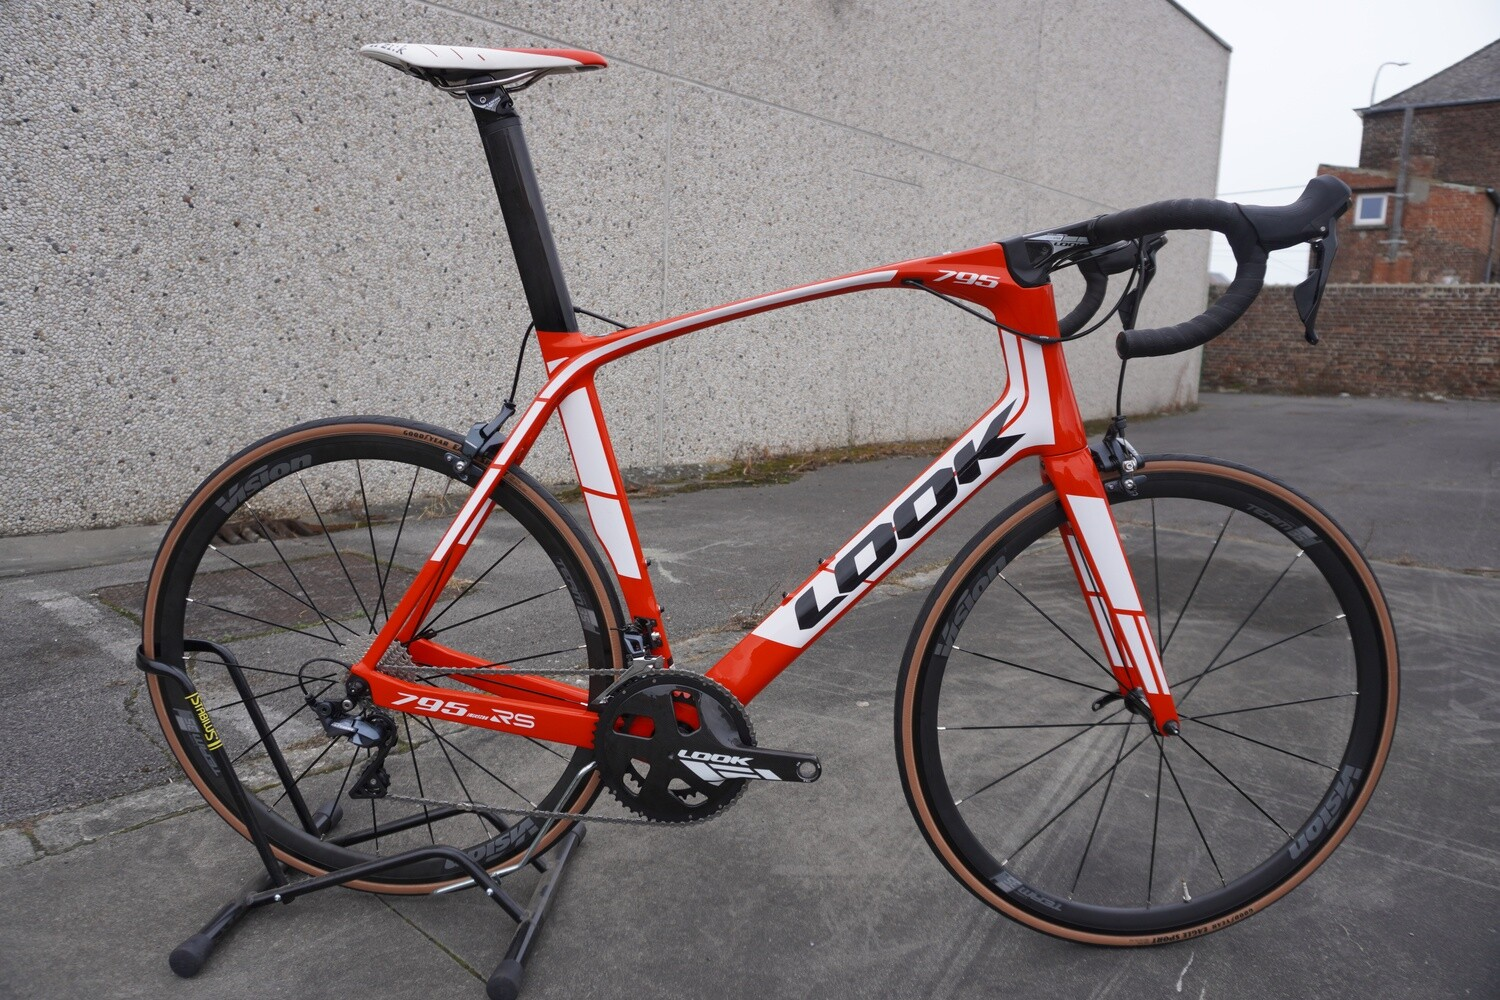 Look 795 Light RS Taille XL - Shimano Ultegra R8000